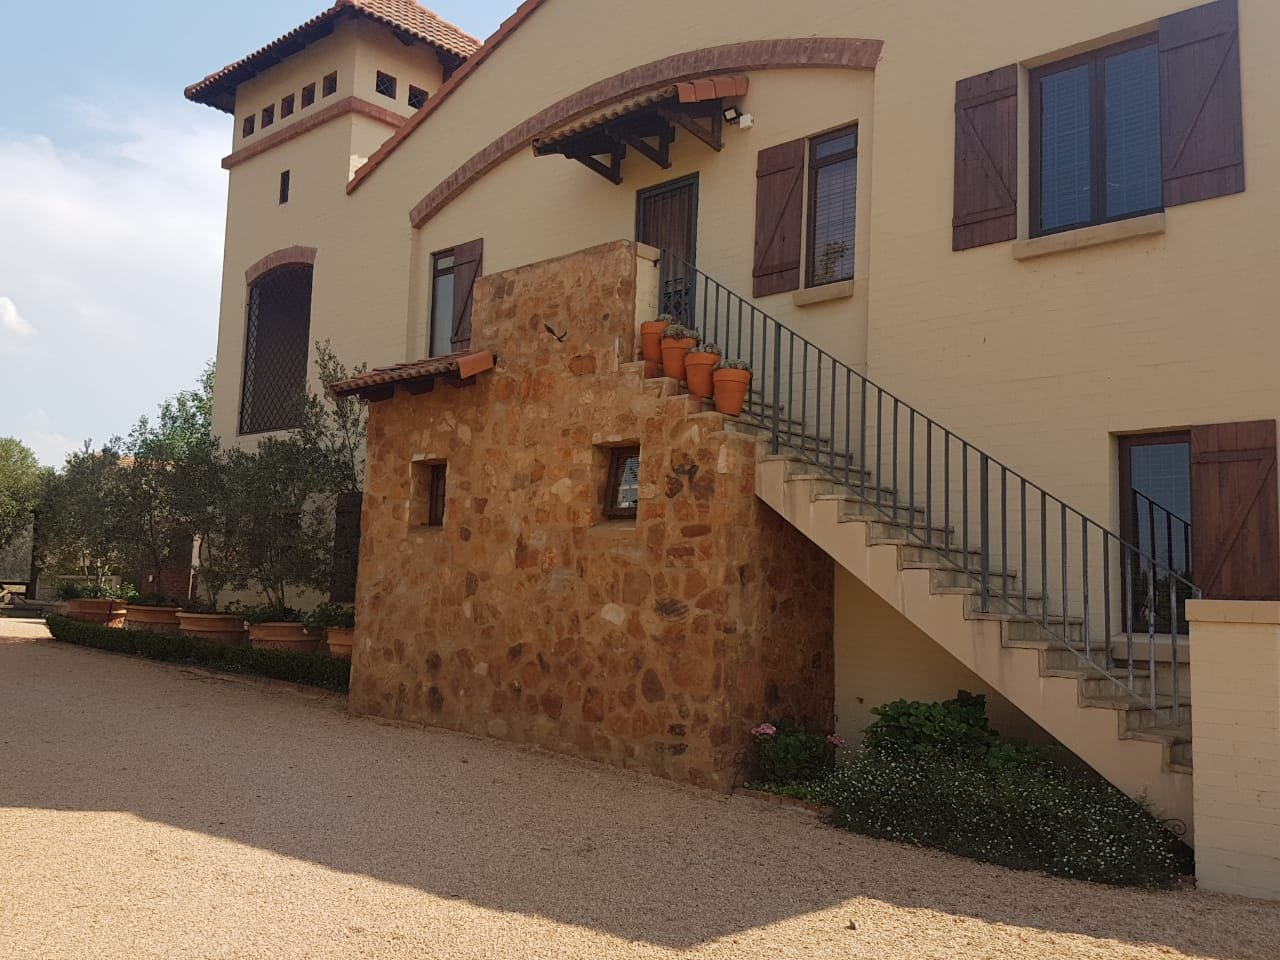 Property and Houses for sale in Derdepoort, Farms, 6 Bedrooms - ZAR 5,800,000